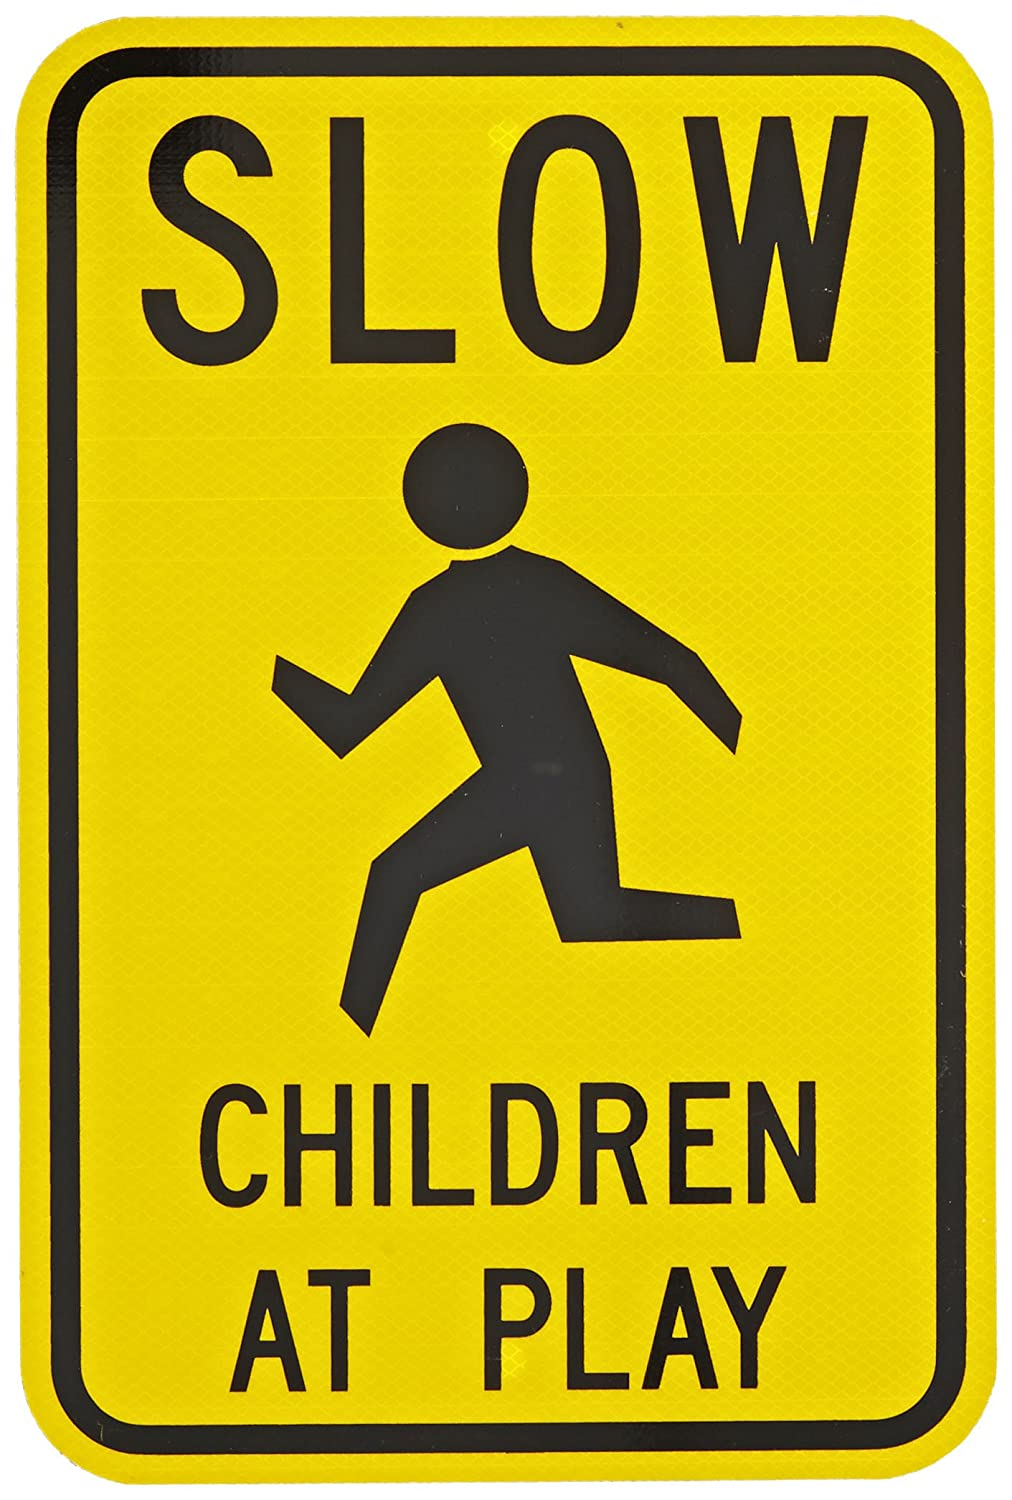 12 Width x 18 Height Tapco W9-12 Engineer Grade Prismatic Rectangular School Sign LegendSLOW CHILDREN AT PLAY with Symbol Aluminum Black on Yellow